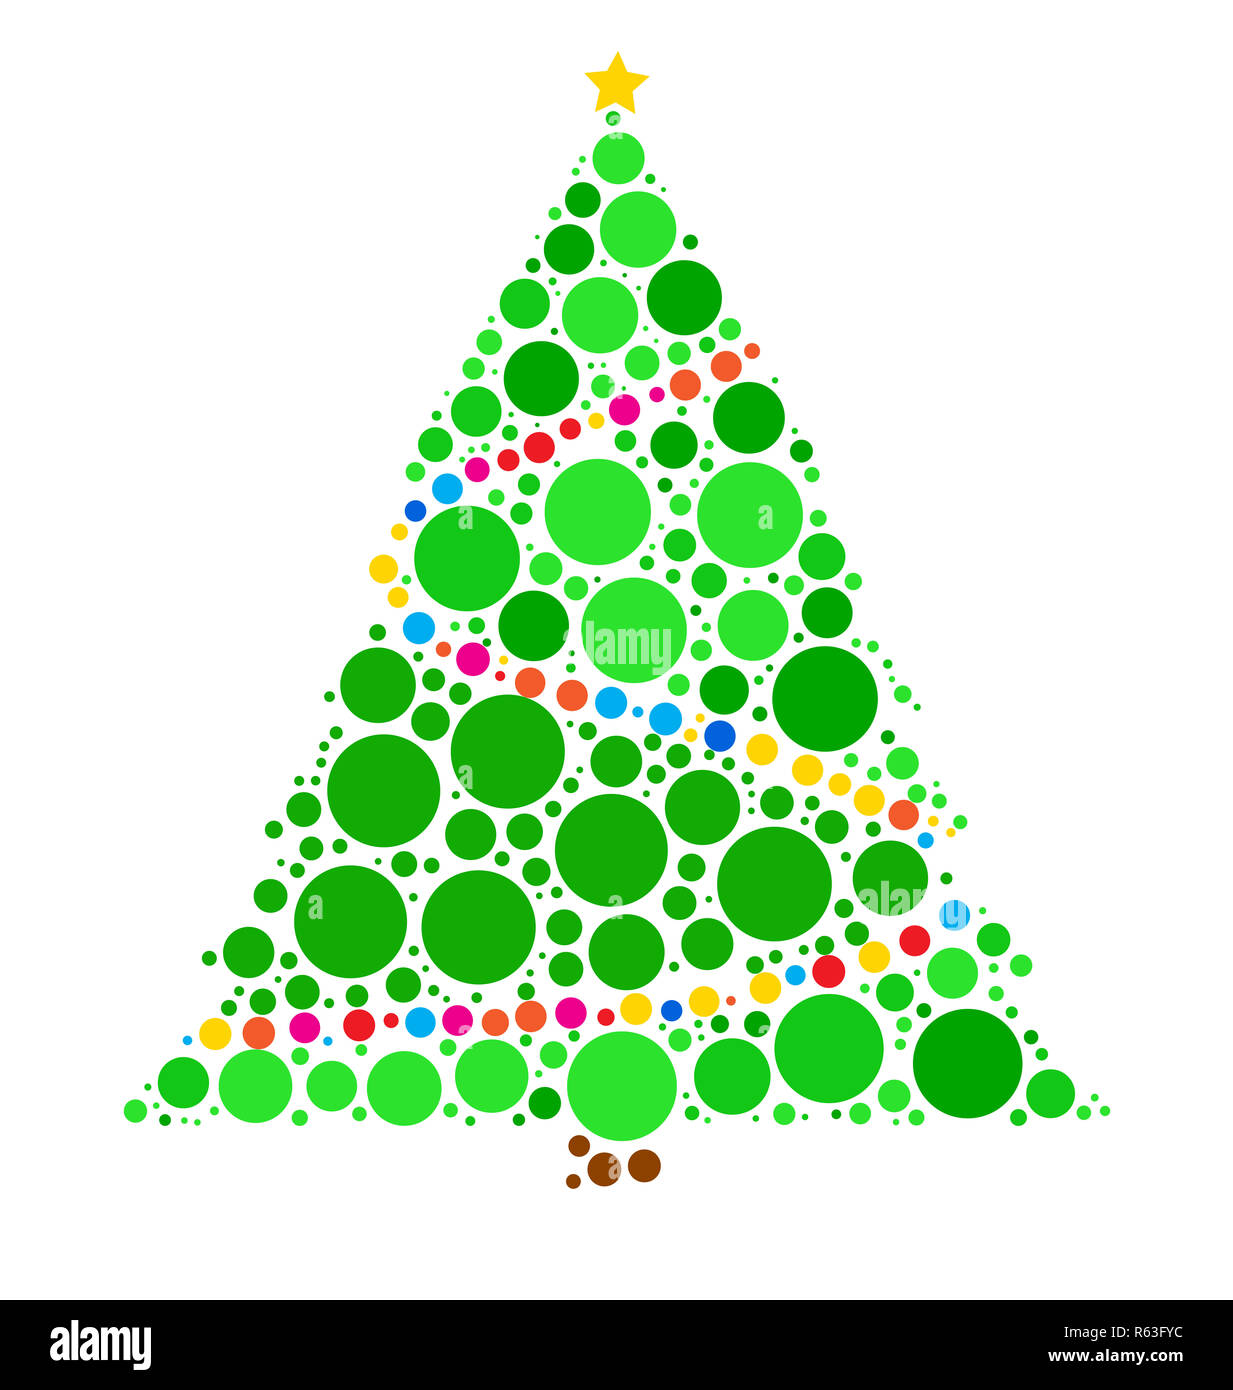 Christmas Trees Background Clipart.Christmas Tree Clipart Stock Photos Christmas Tree Clipart